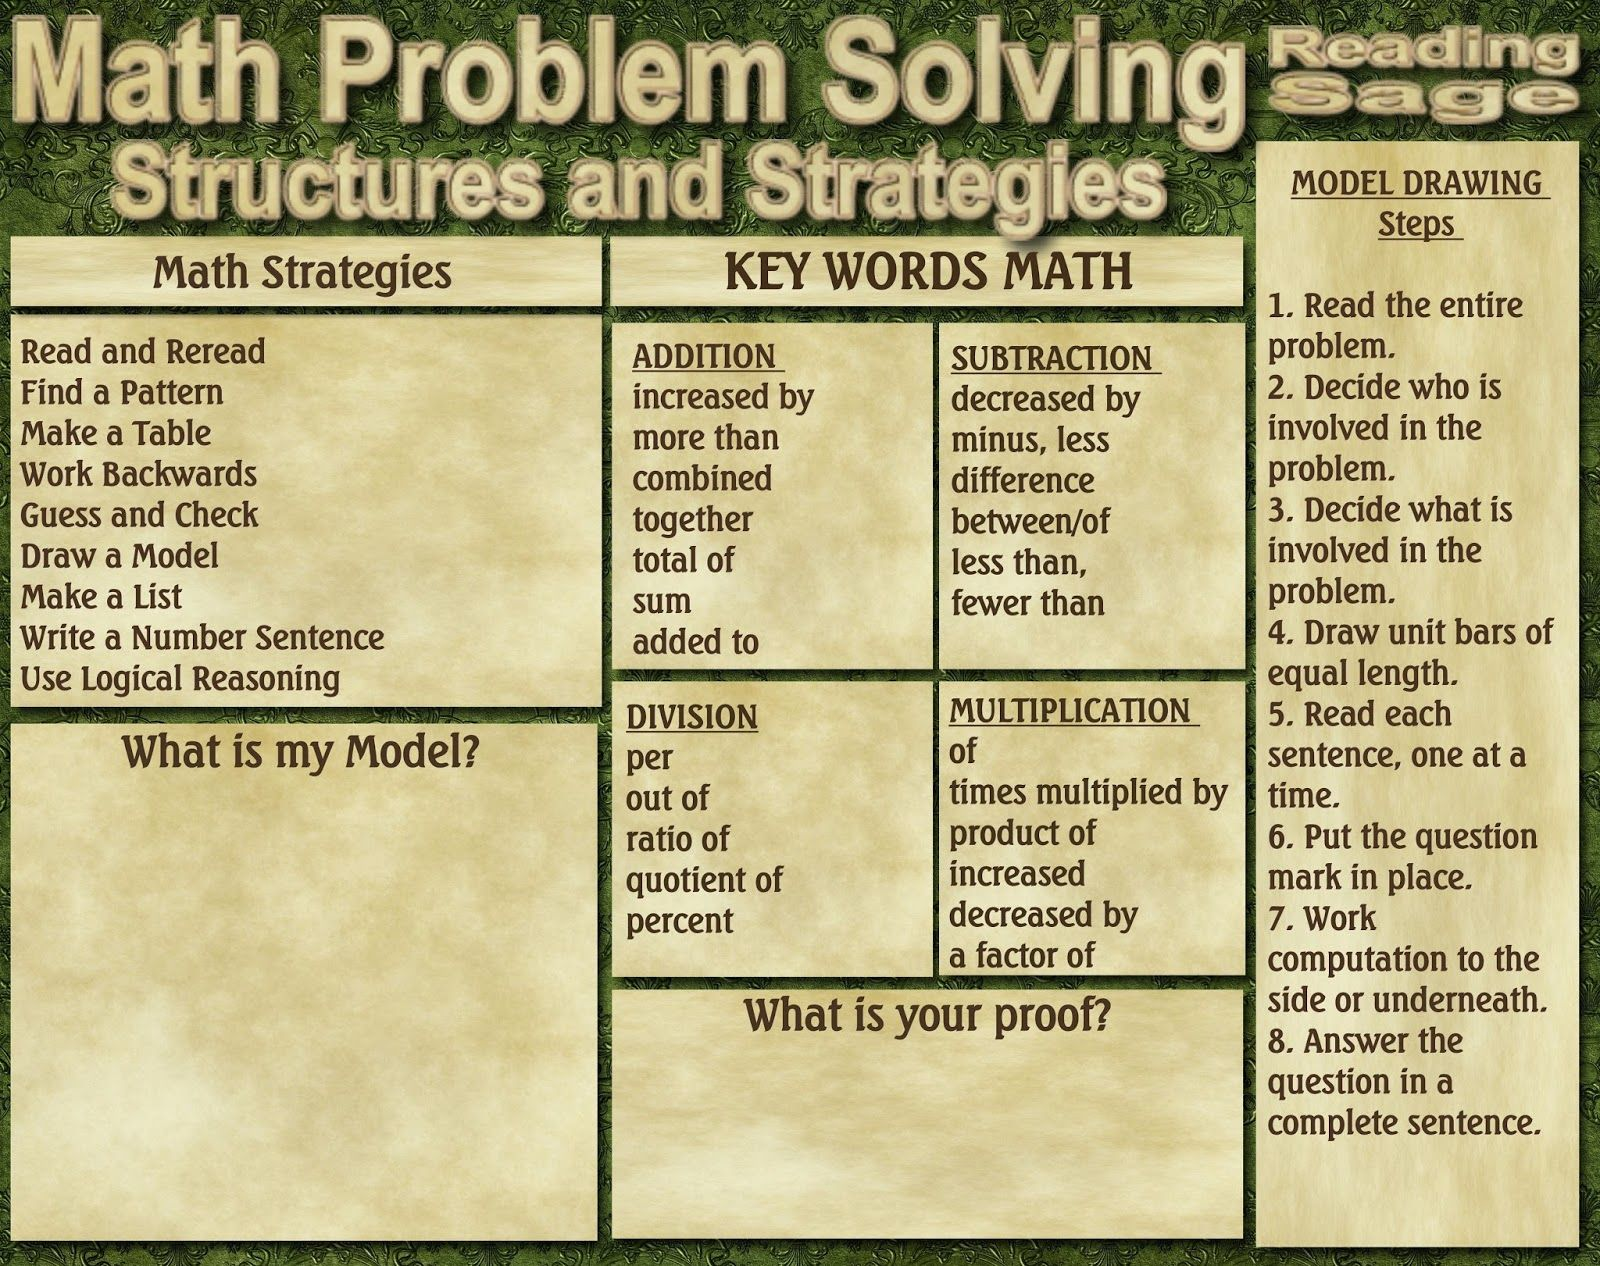 Reading Sage Grade 7 Ccss Math Lesson Plans Math Problem Solving Math Test Prep Math Word Problems